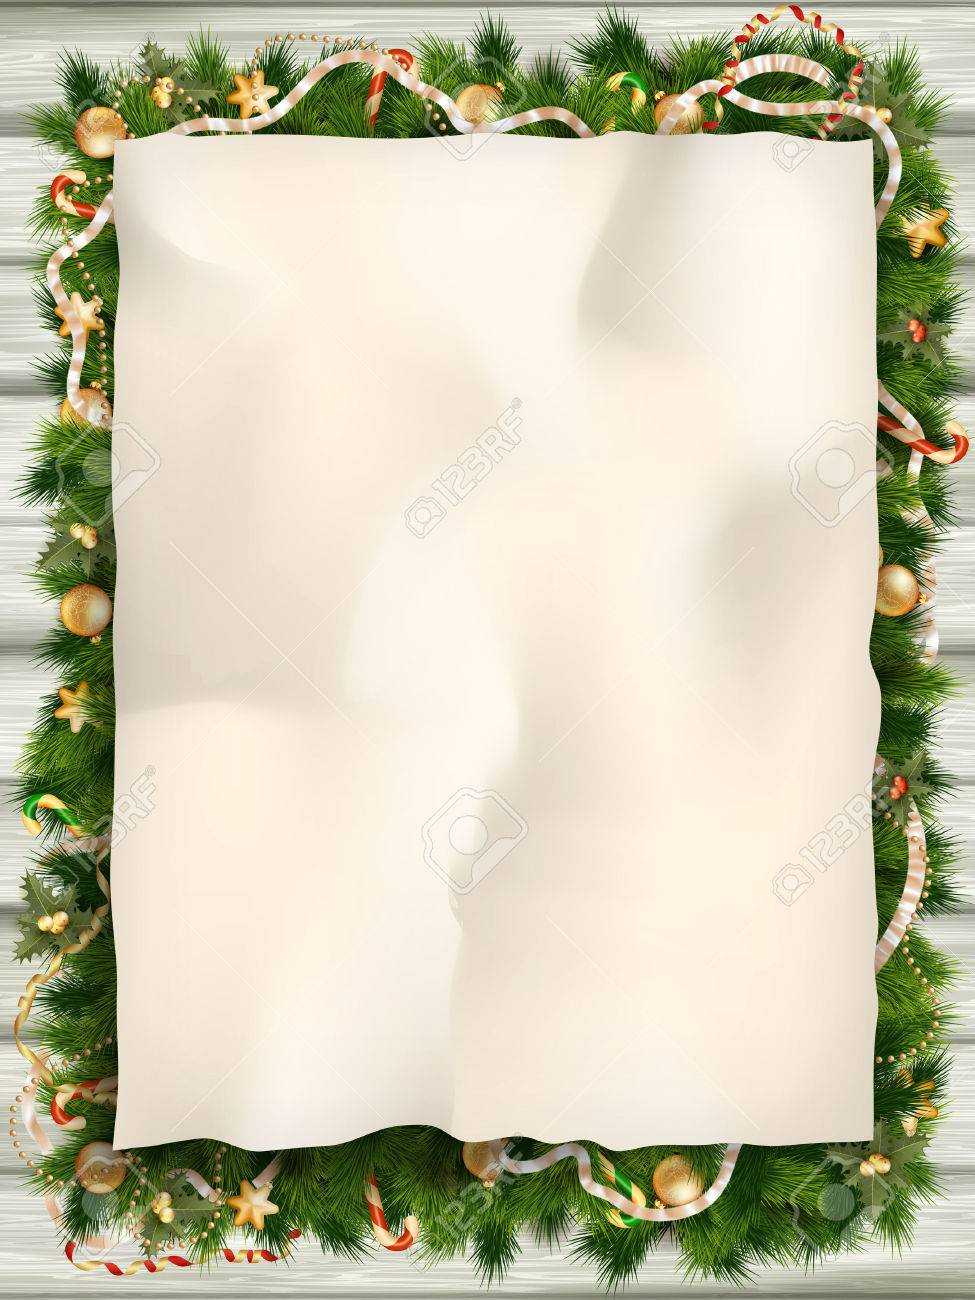 Christmas fir tree with paper and christmas decorations. - 47562884